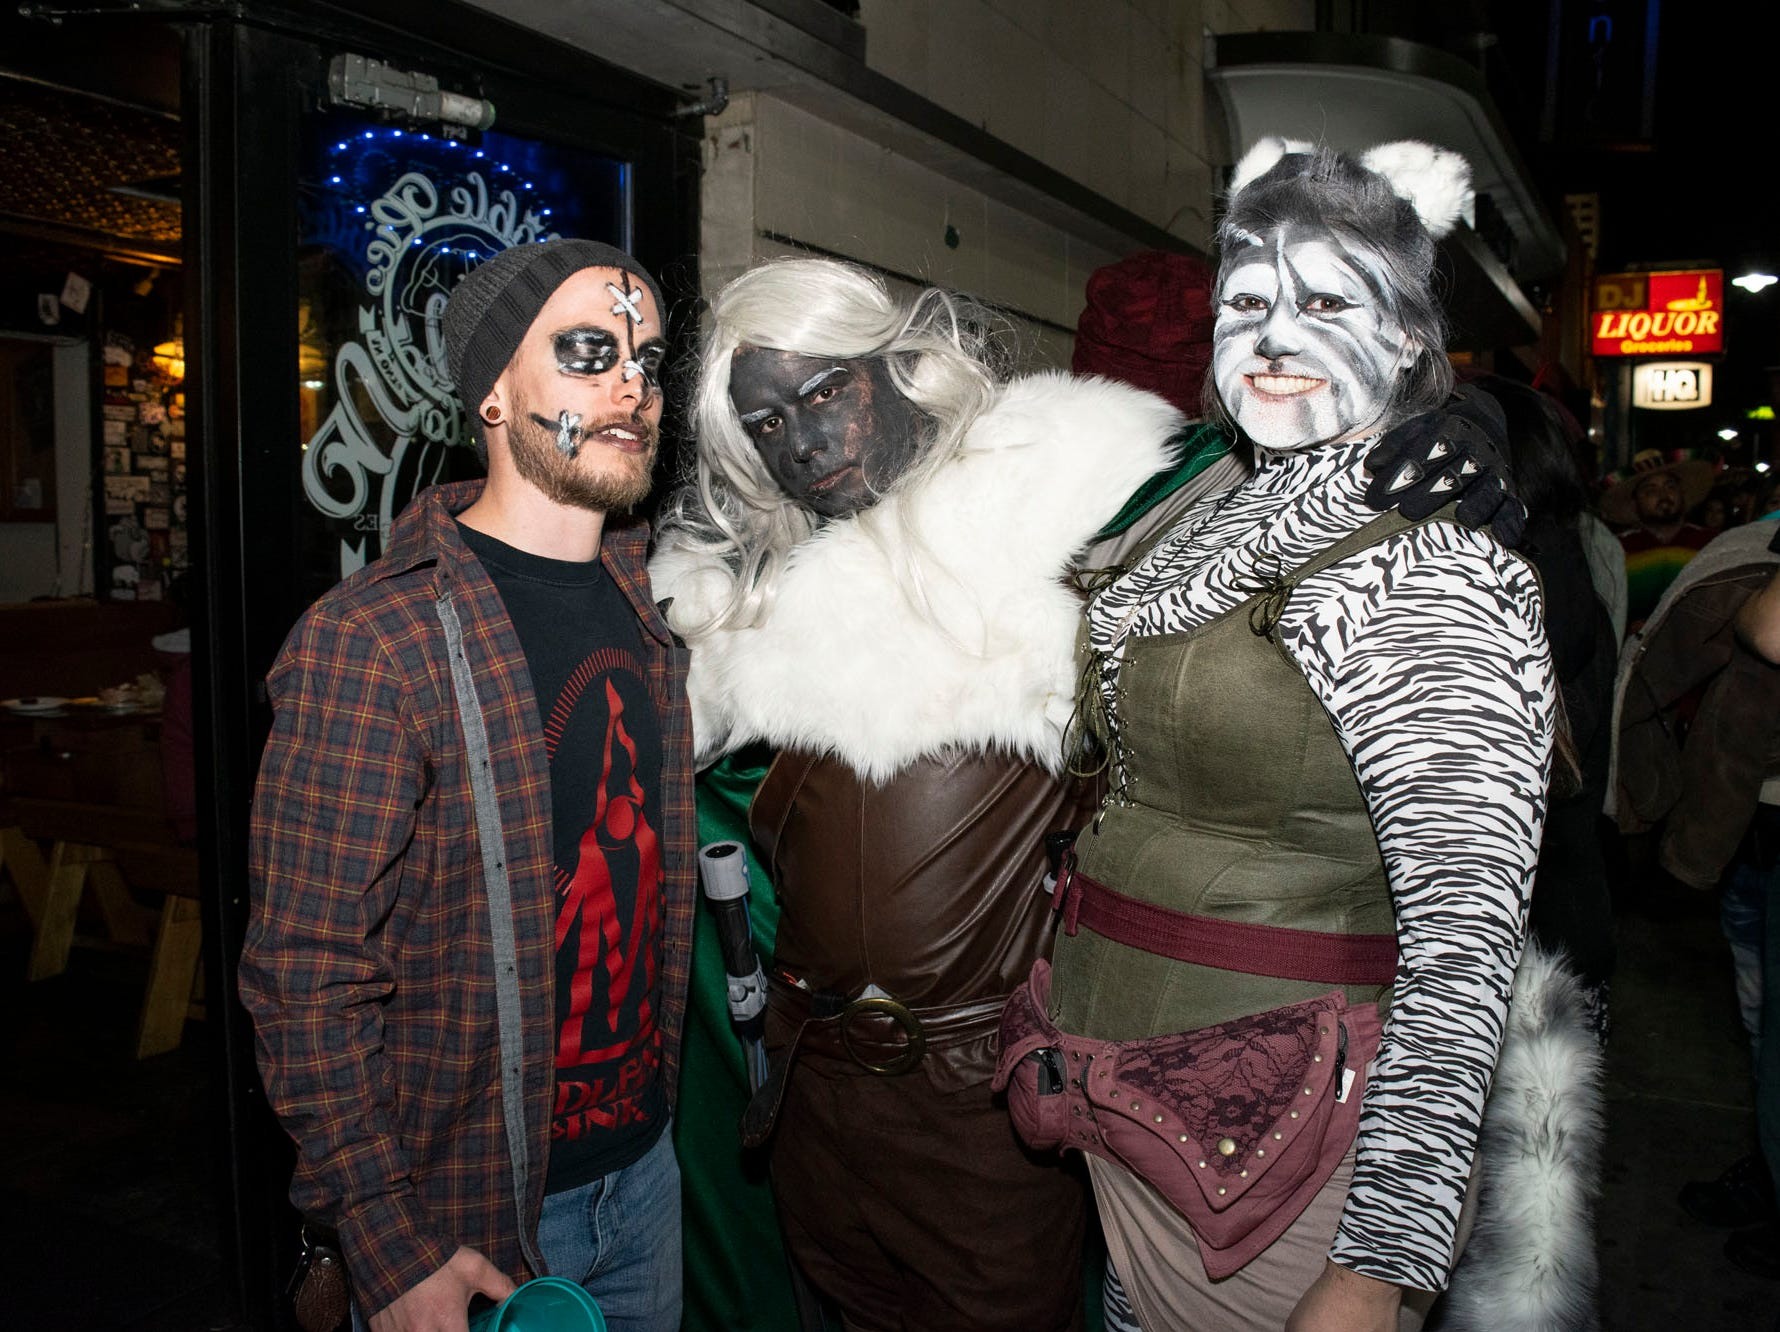 Kyake Rollins, Justin Moll, and Christina Koehlen attend the Zombie Crawl on Saturday, Oct. 20, 2018. Reno, Nev.